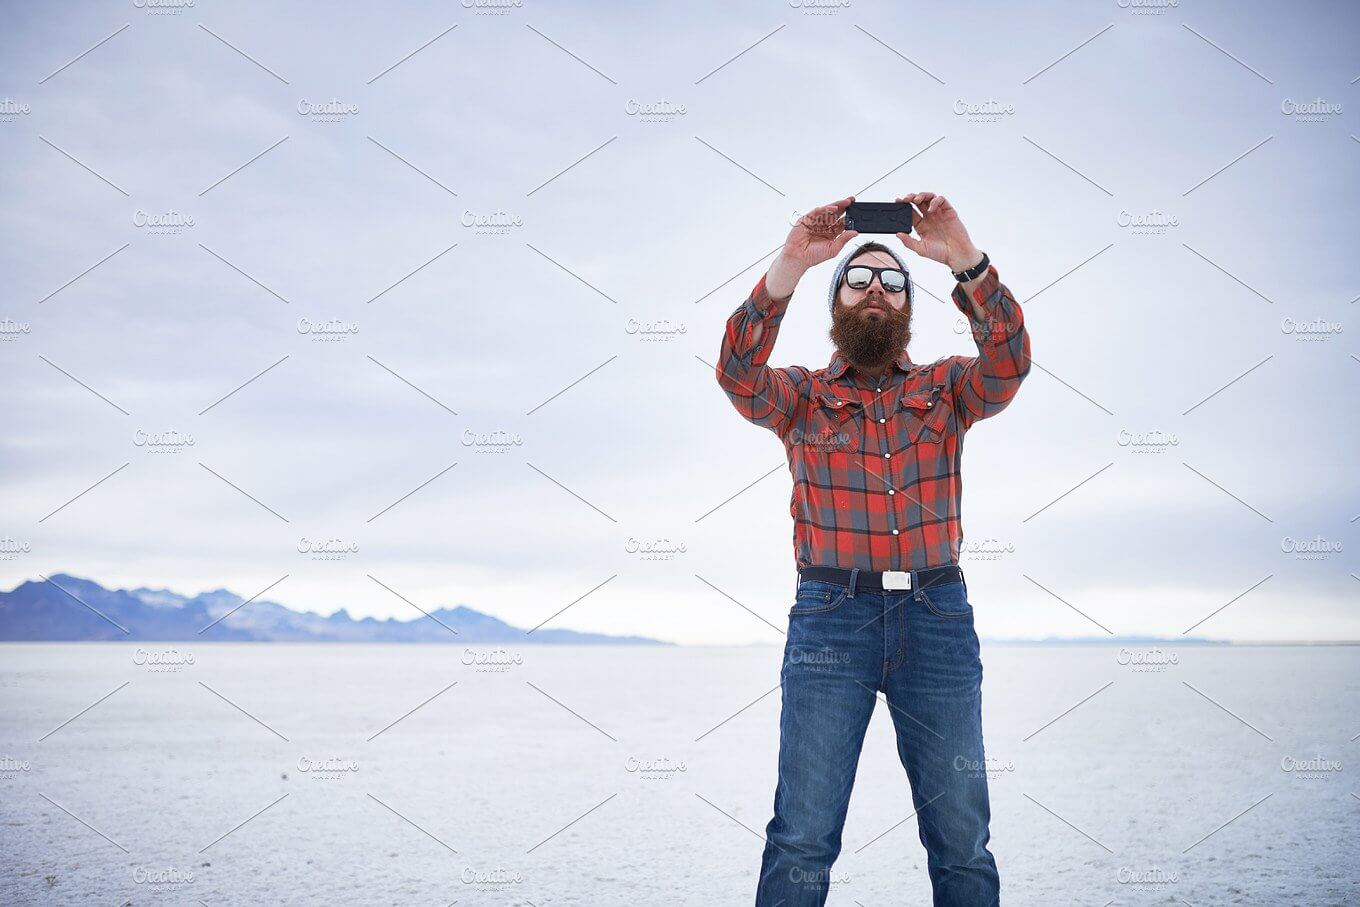 Alone Man Taking Selfie In A Cold Place PSD Mockup